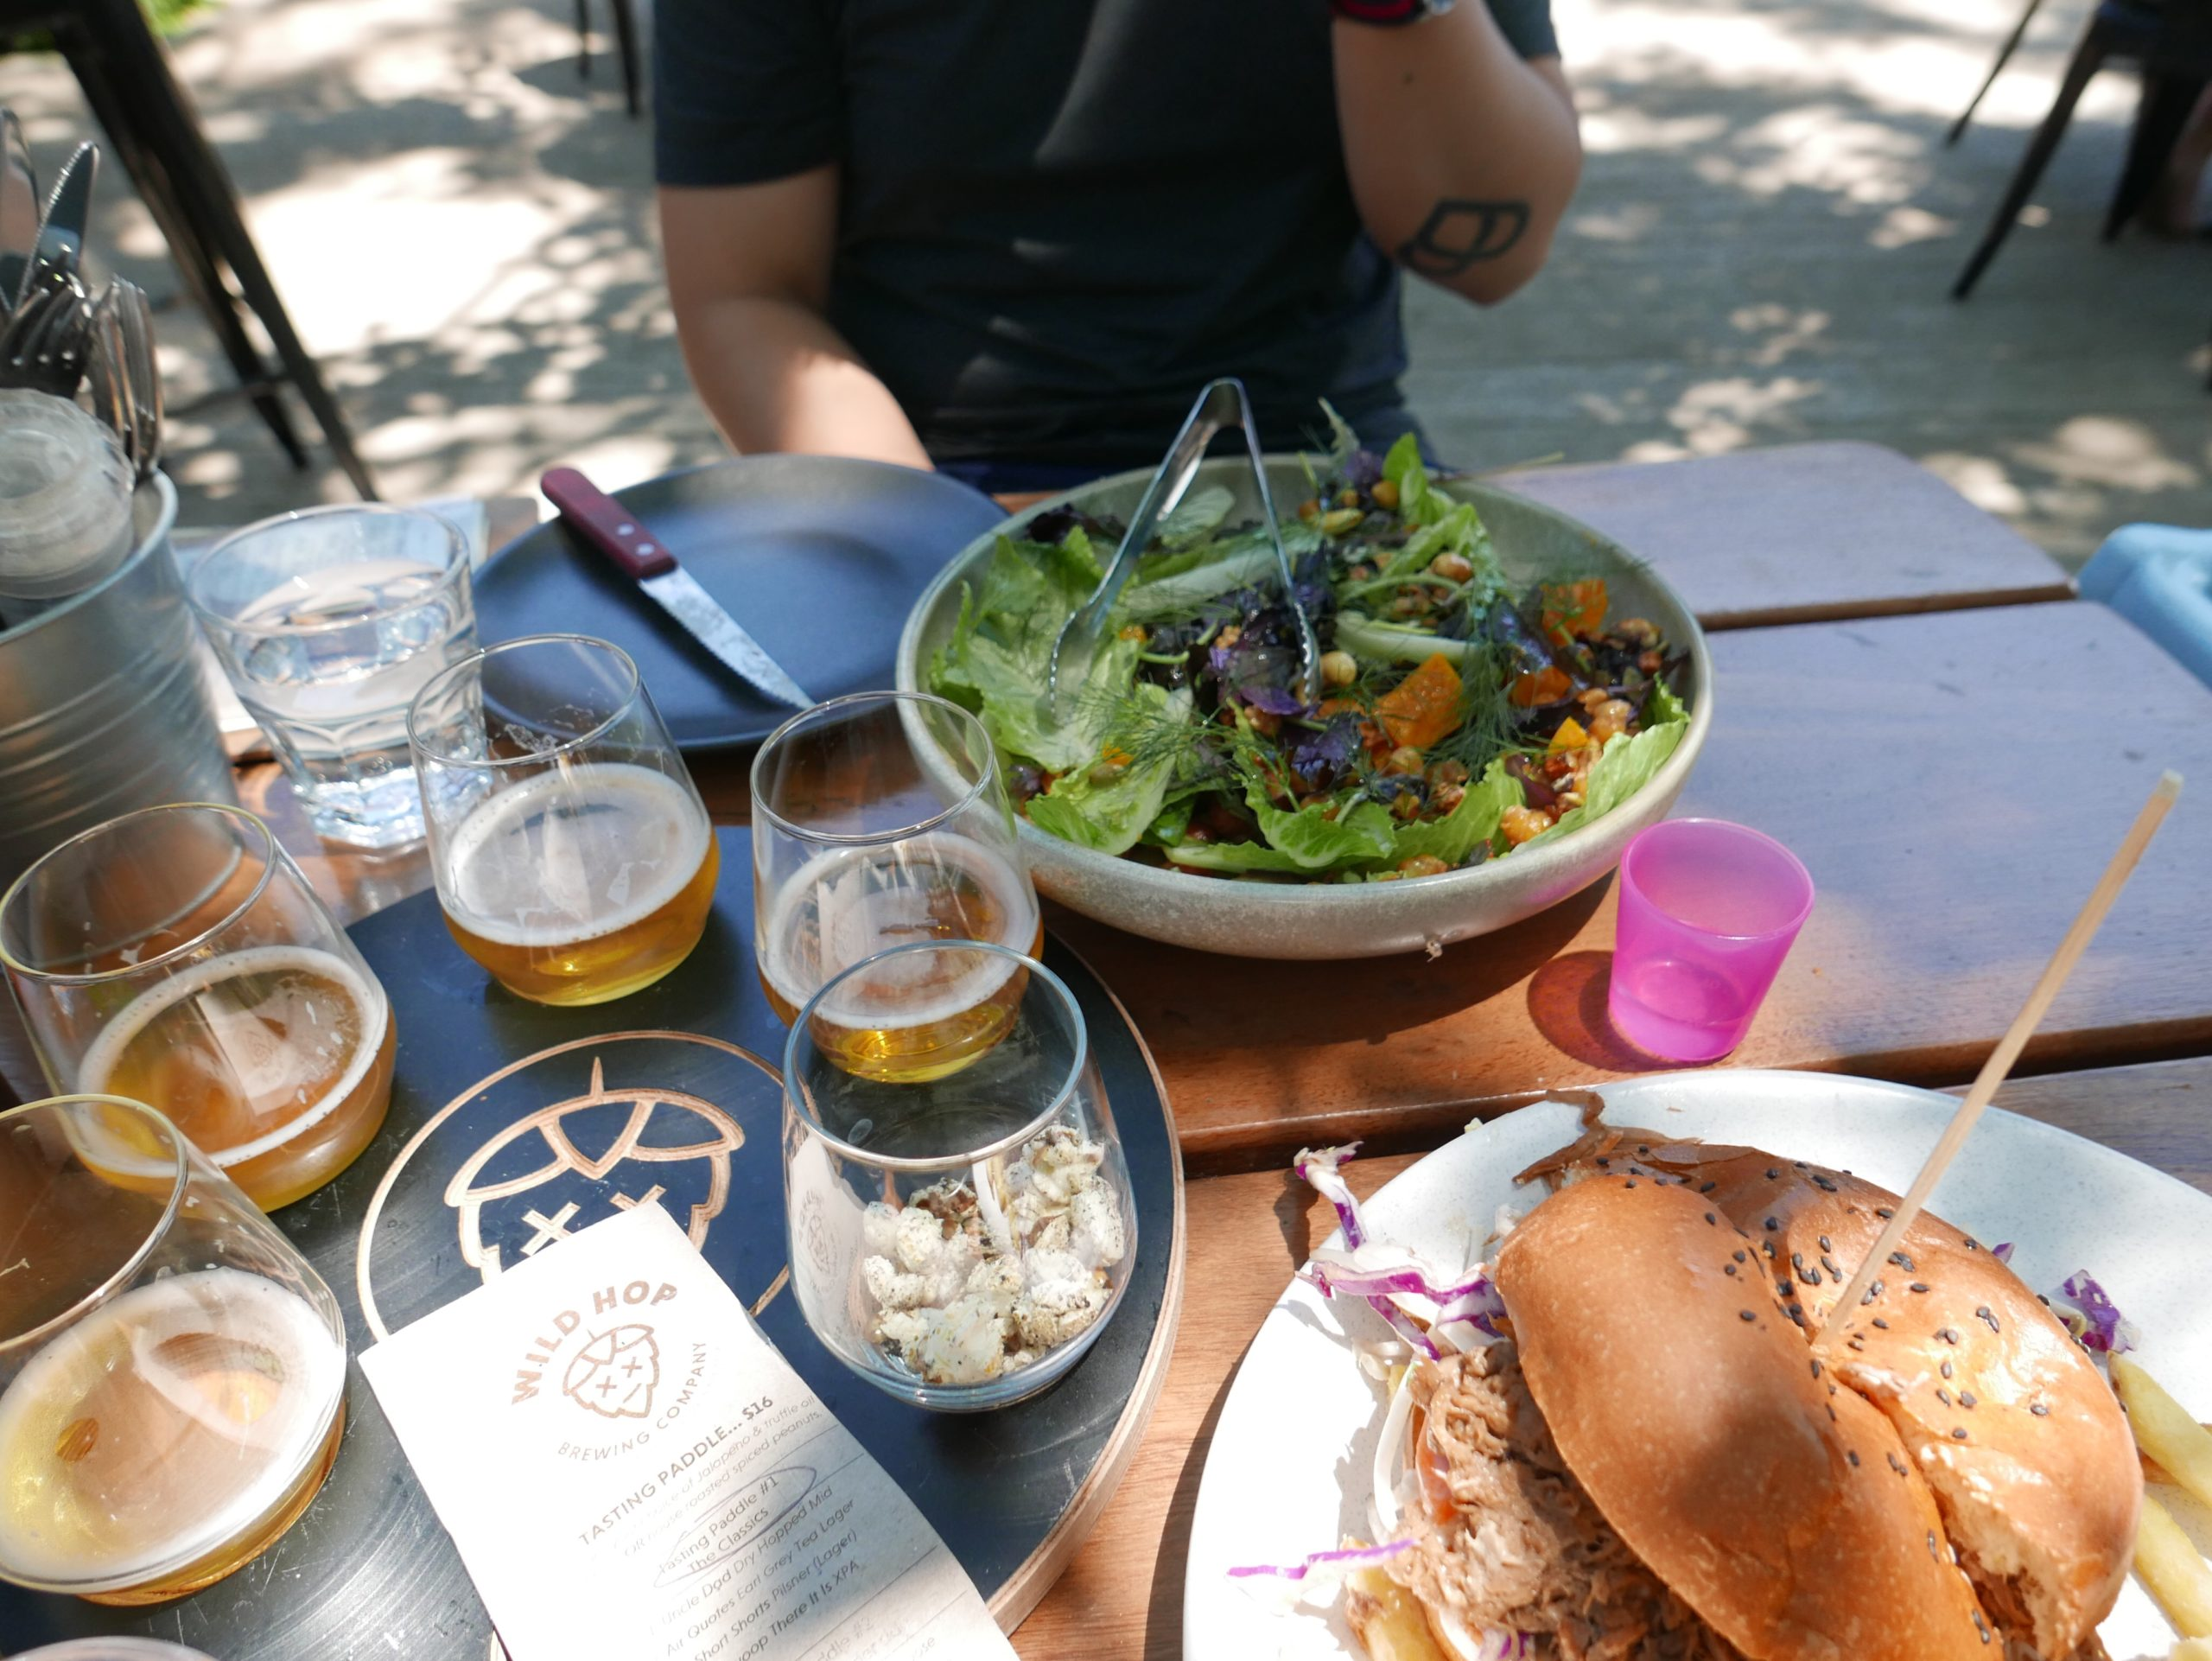 Beer tasting board, a large salad and a pulled pork burger